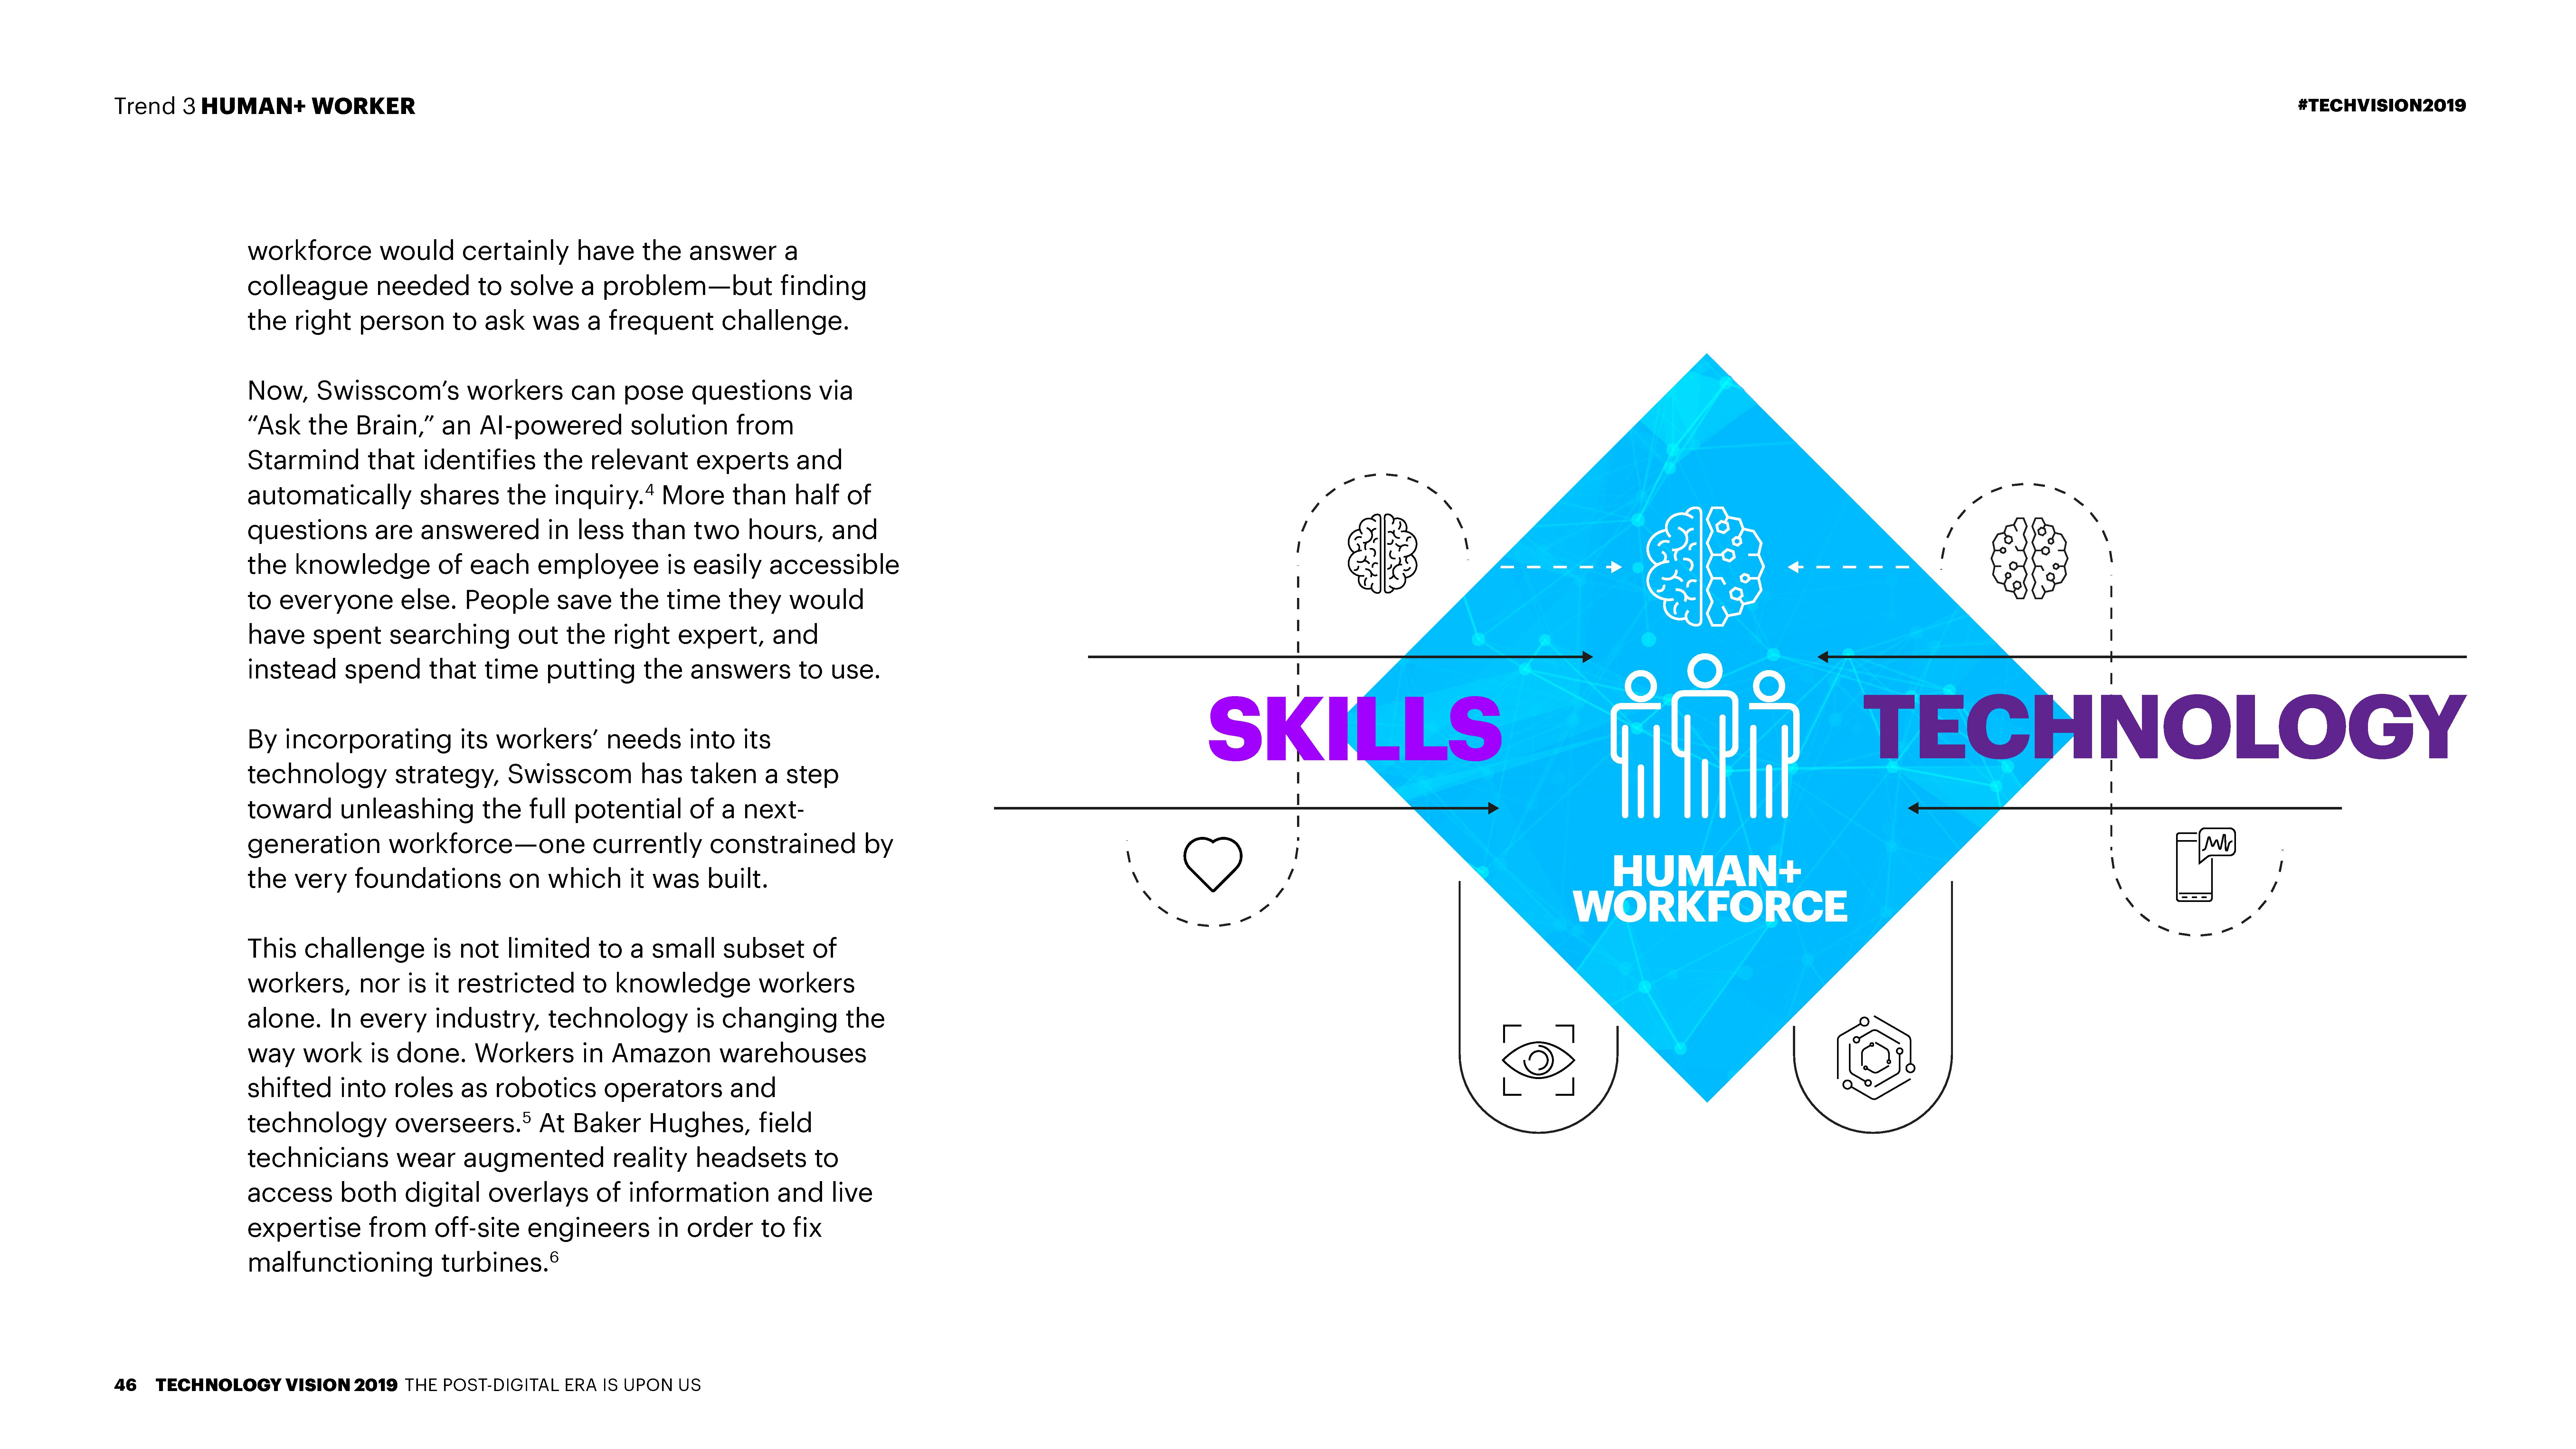 Accenture Technology Vision 2019 | Full Report - 50/103